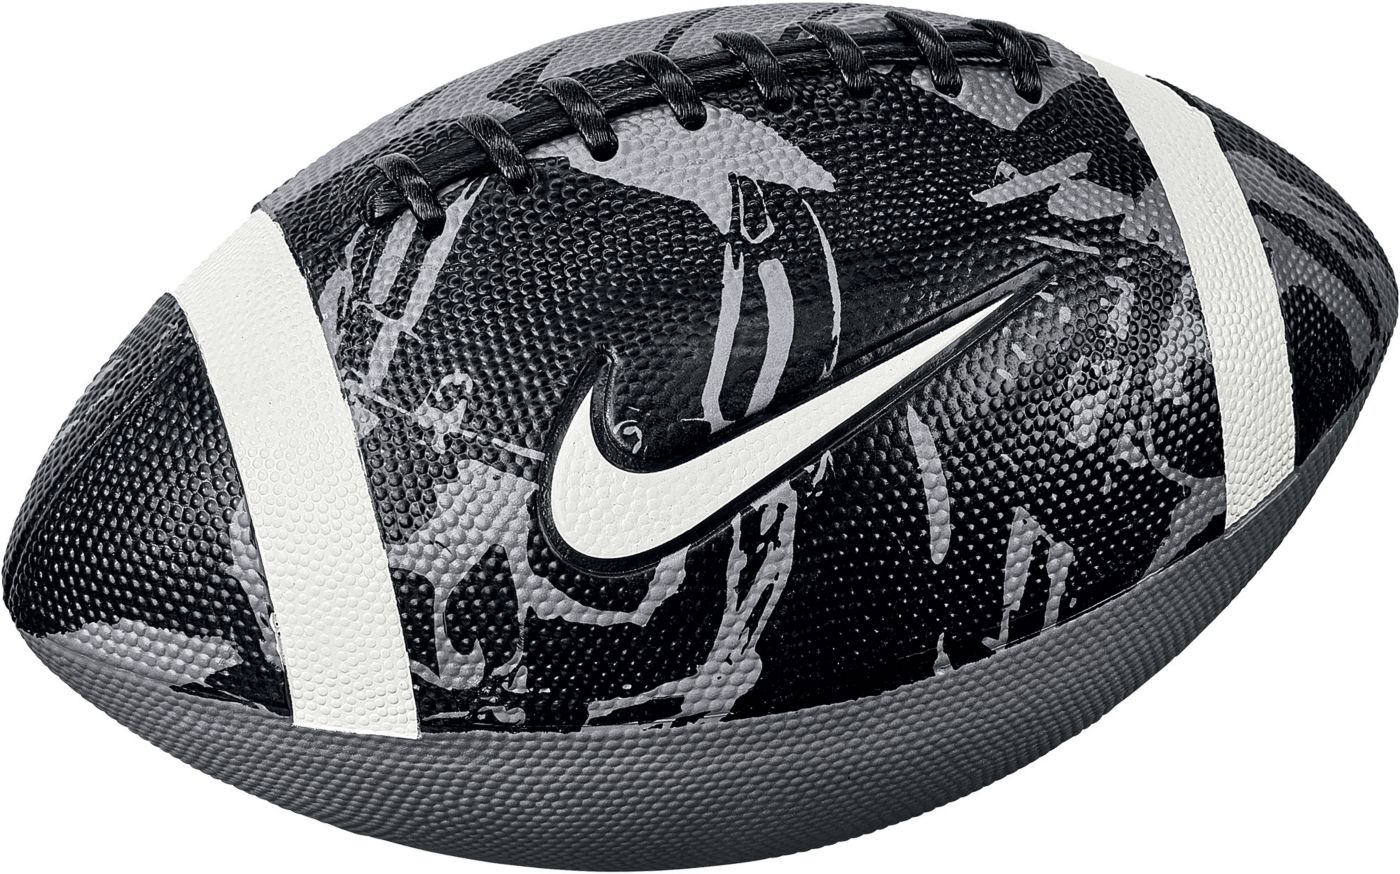 Nike Official Spin 3.0 Football